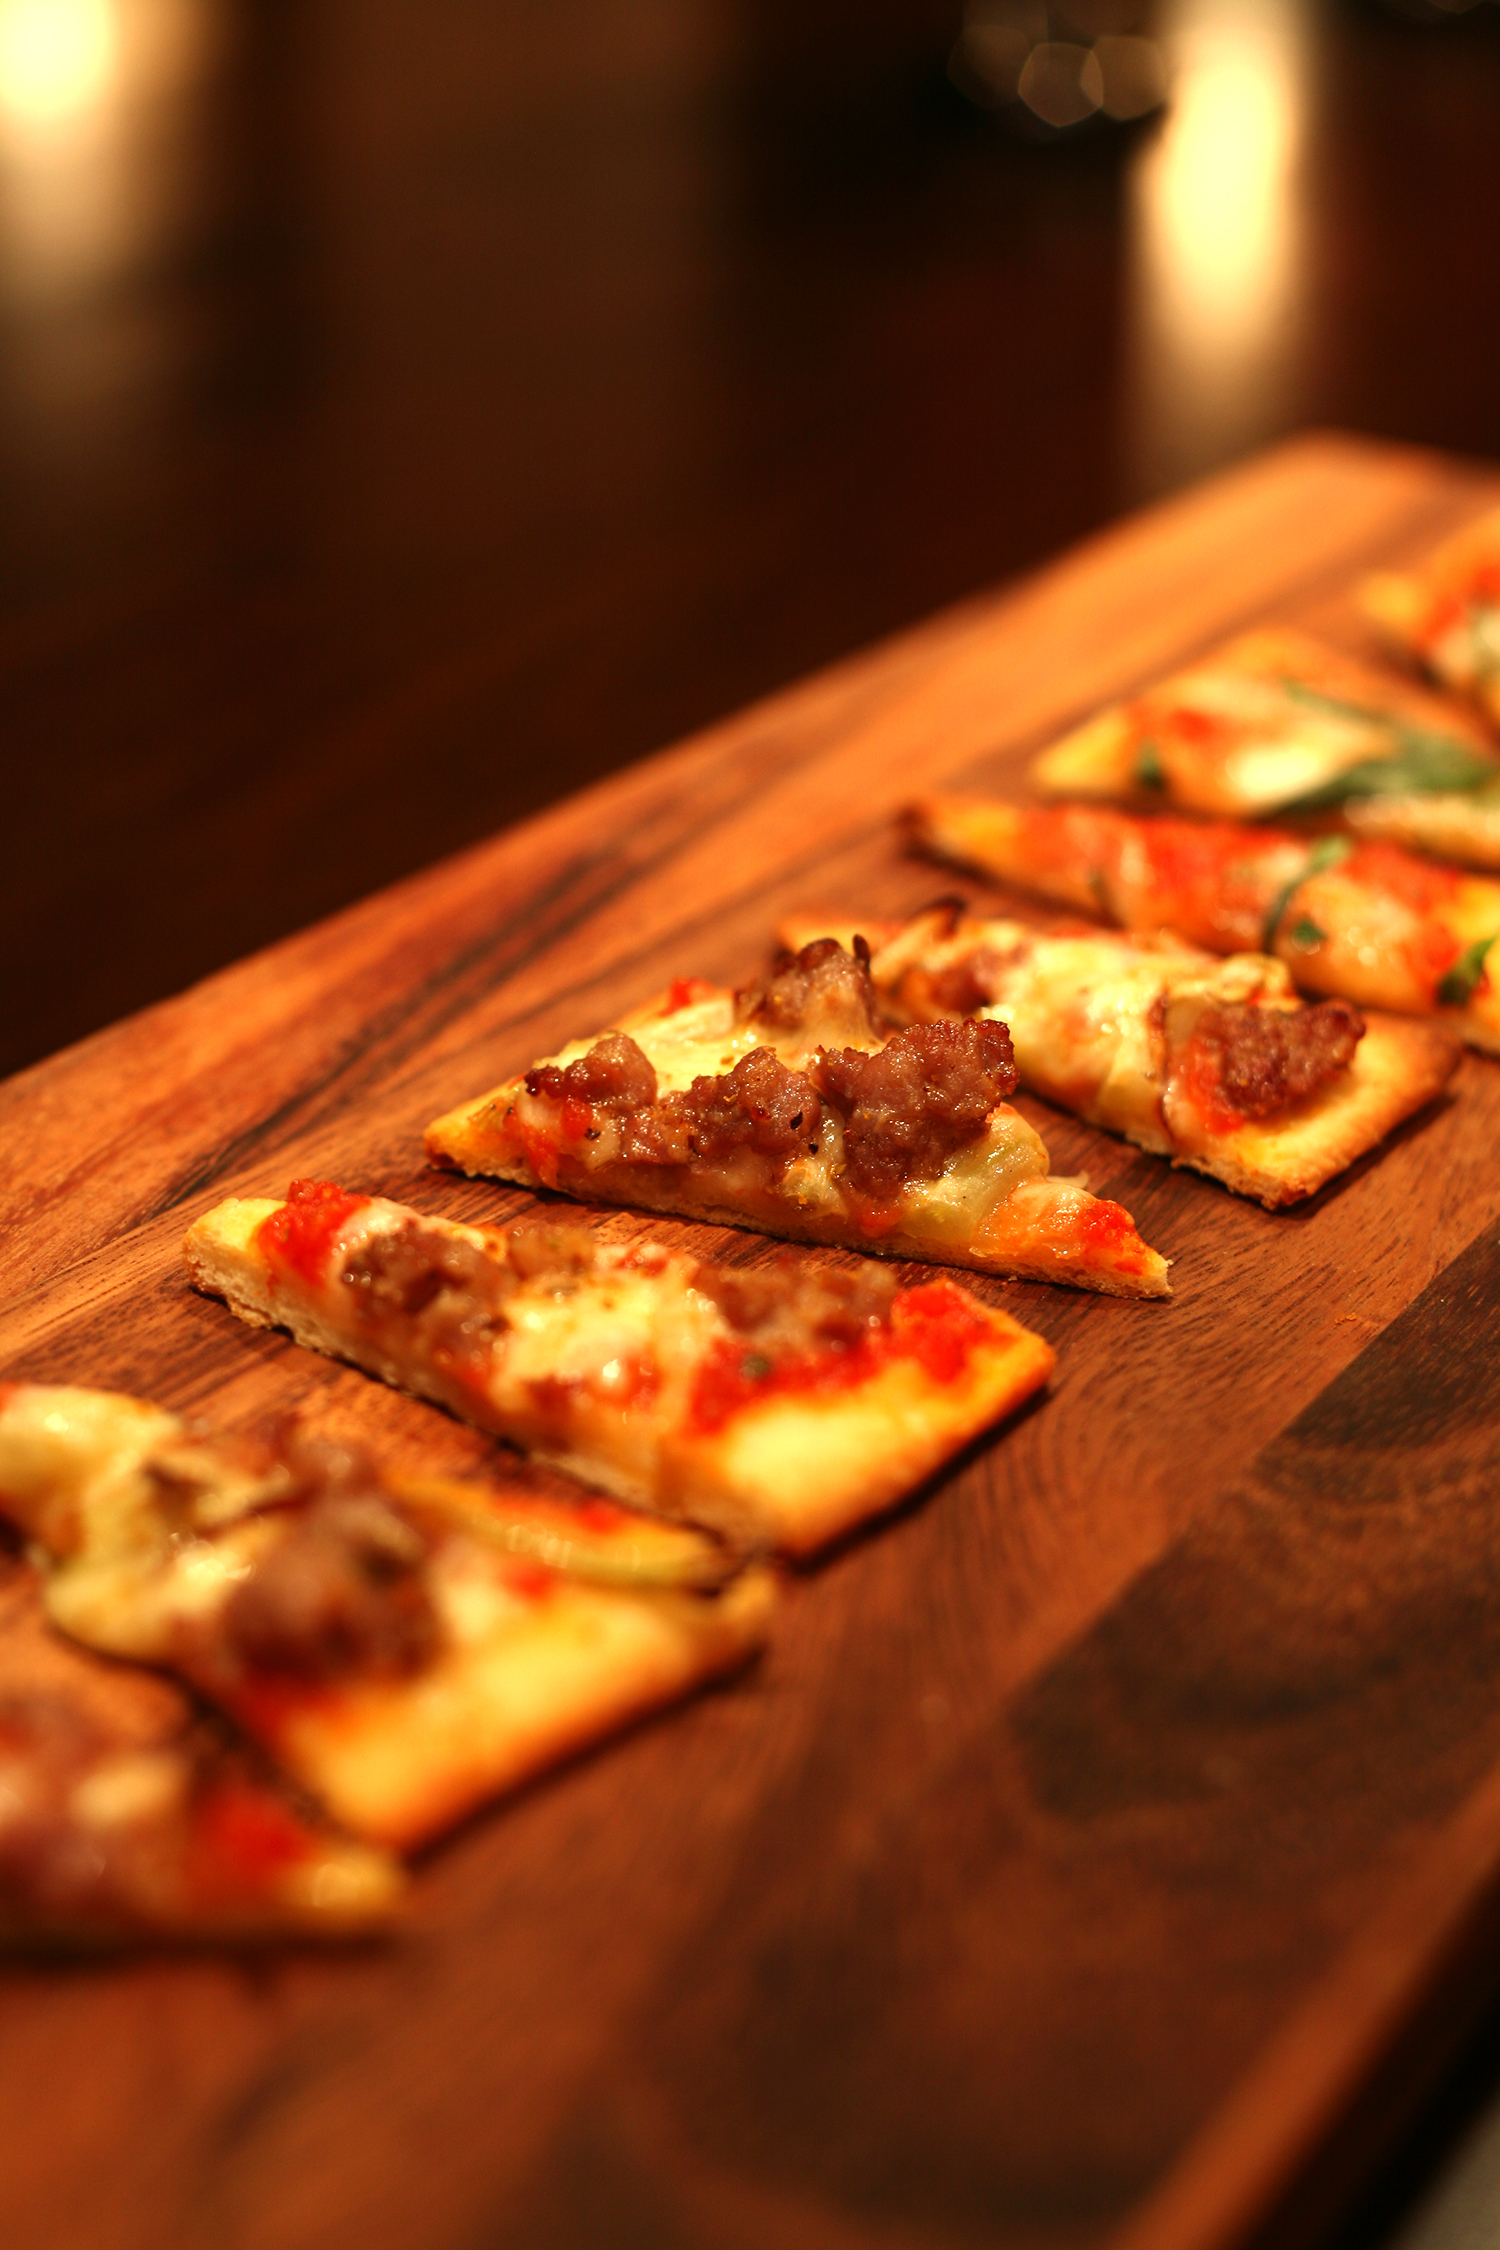 Sausage and fennel pollen pizza